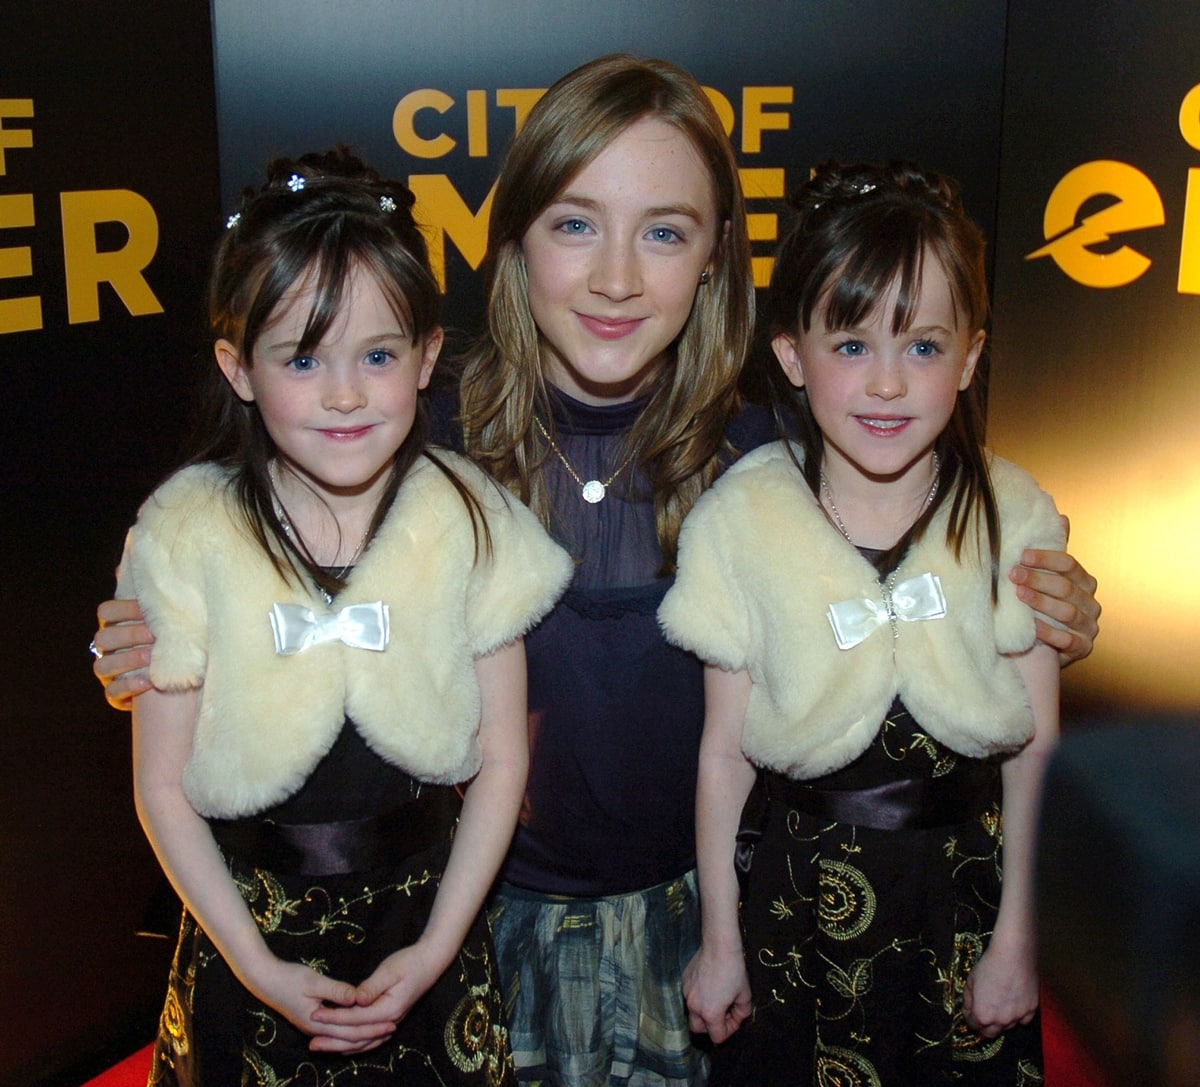 Saoirse Ronan poses with her City of Ember co-stars Amy and Catherine Quinn